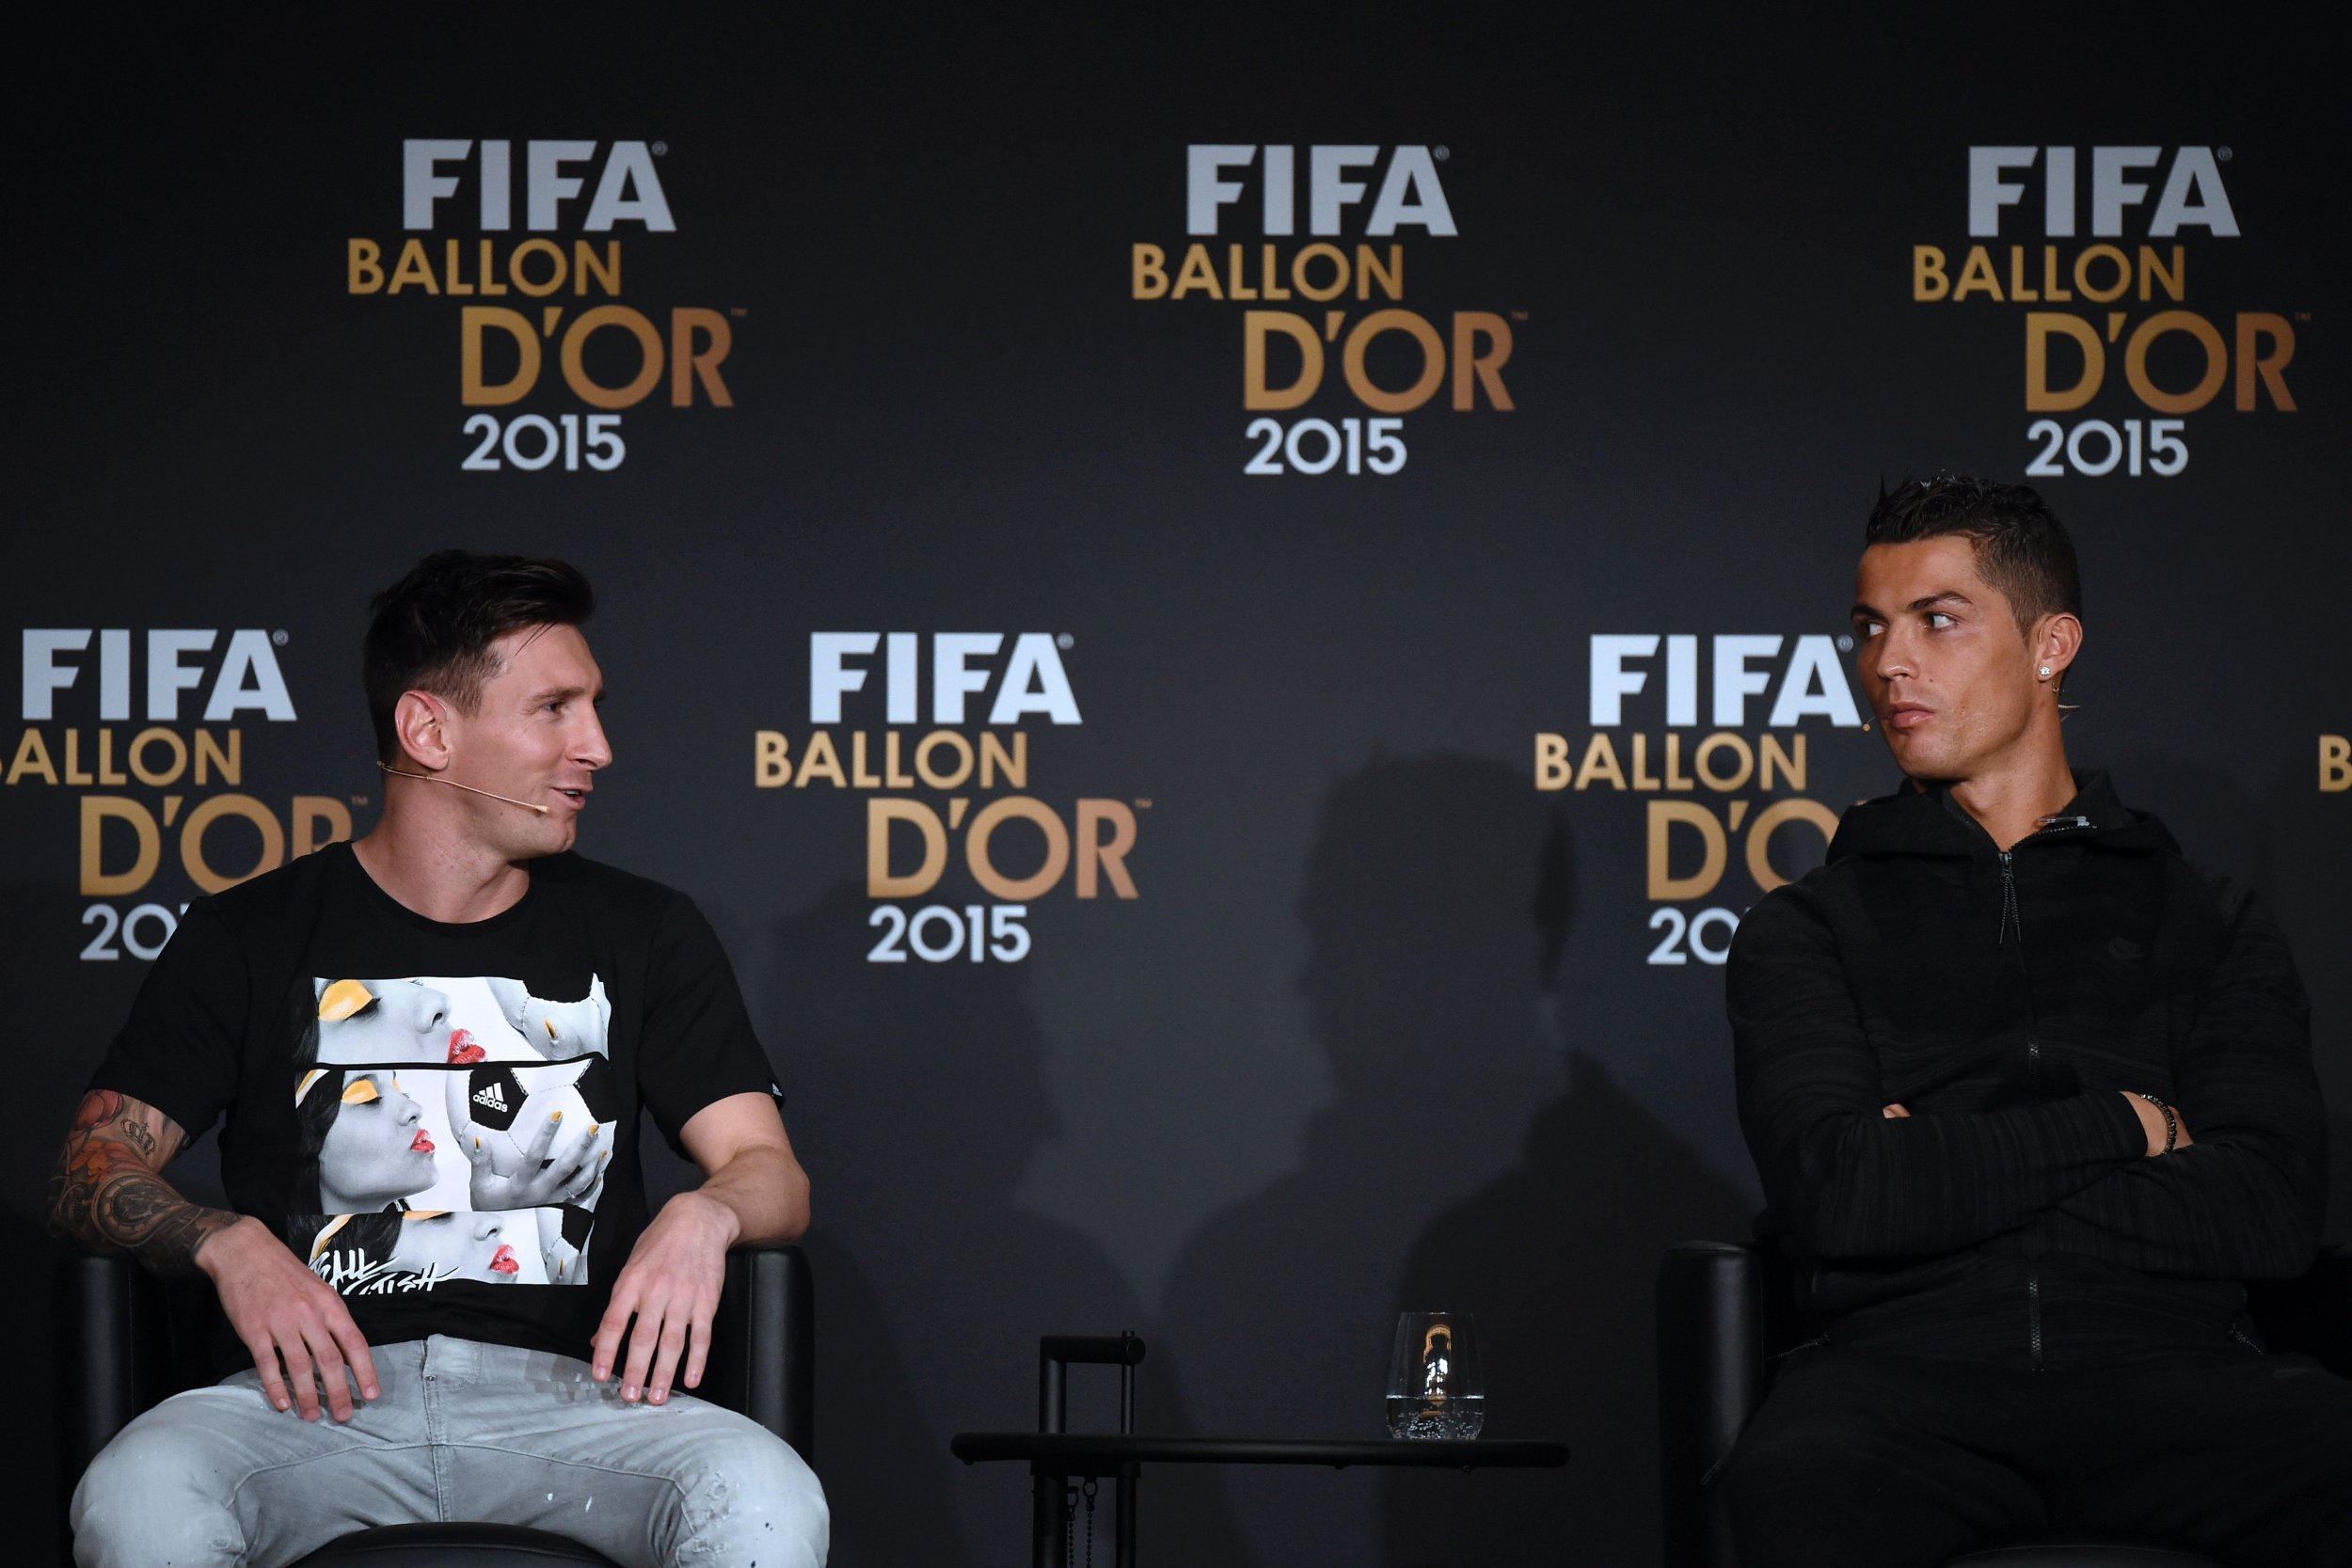 Cristiano Ronaldo and Lionel Messi at the FIFA Ballon d'Or ceremony in January 2016.